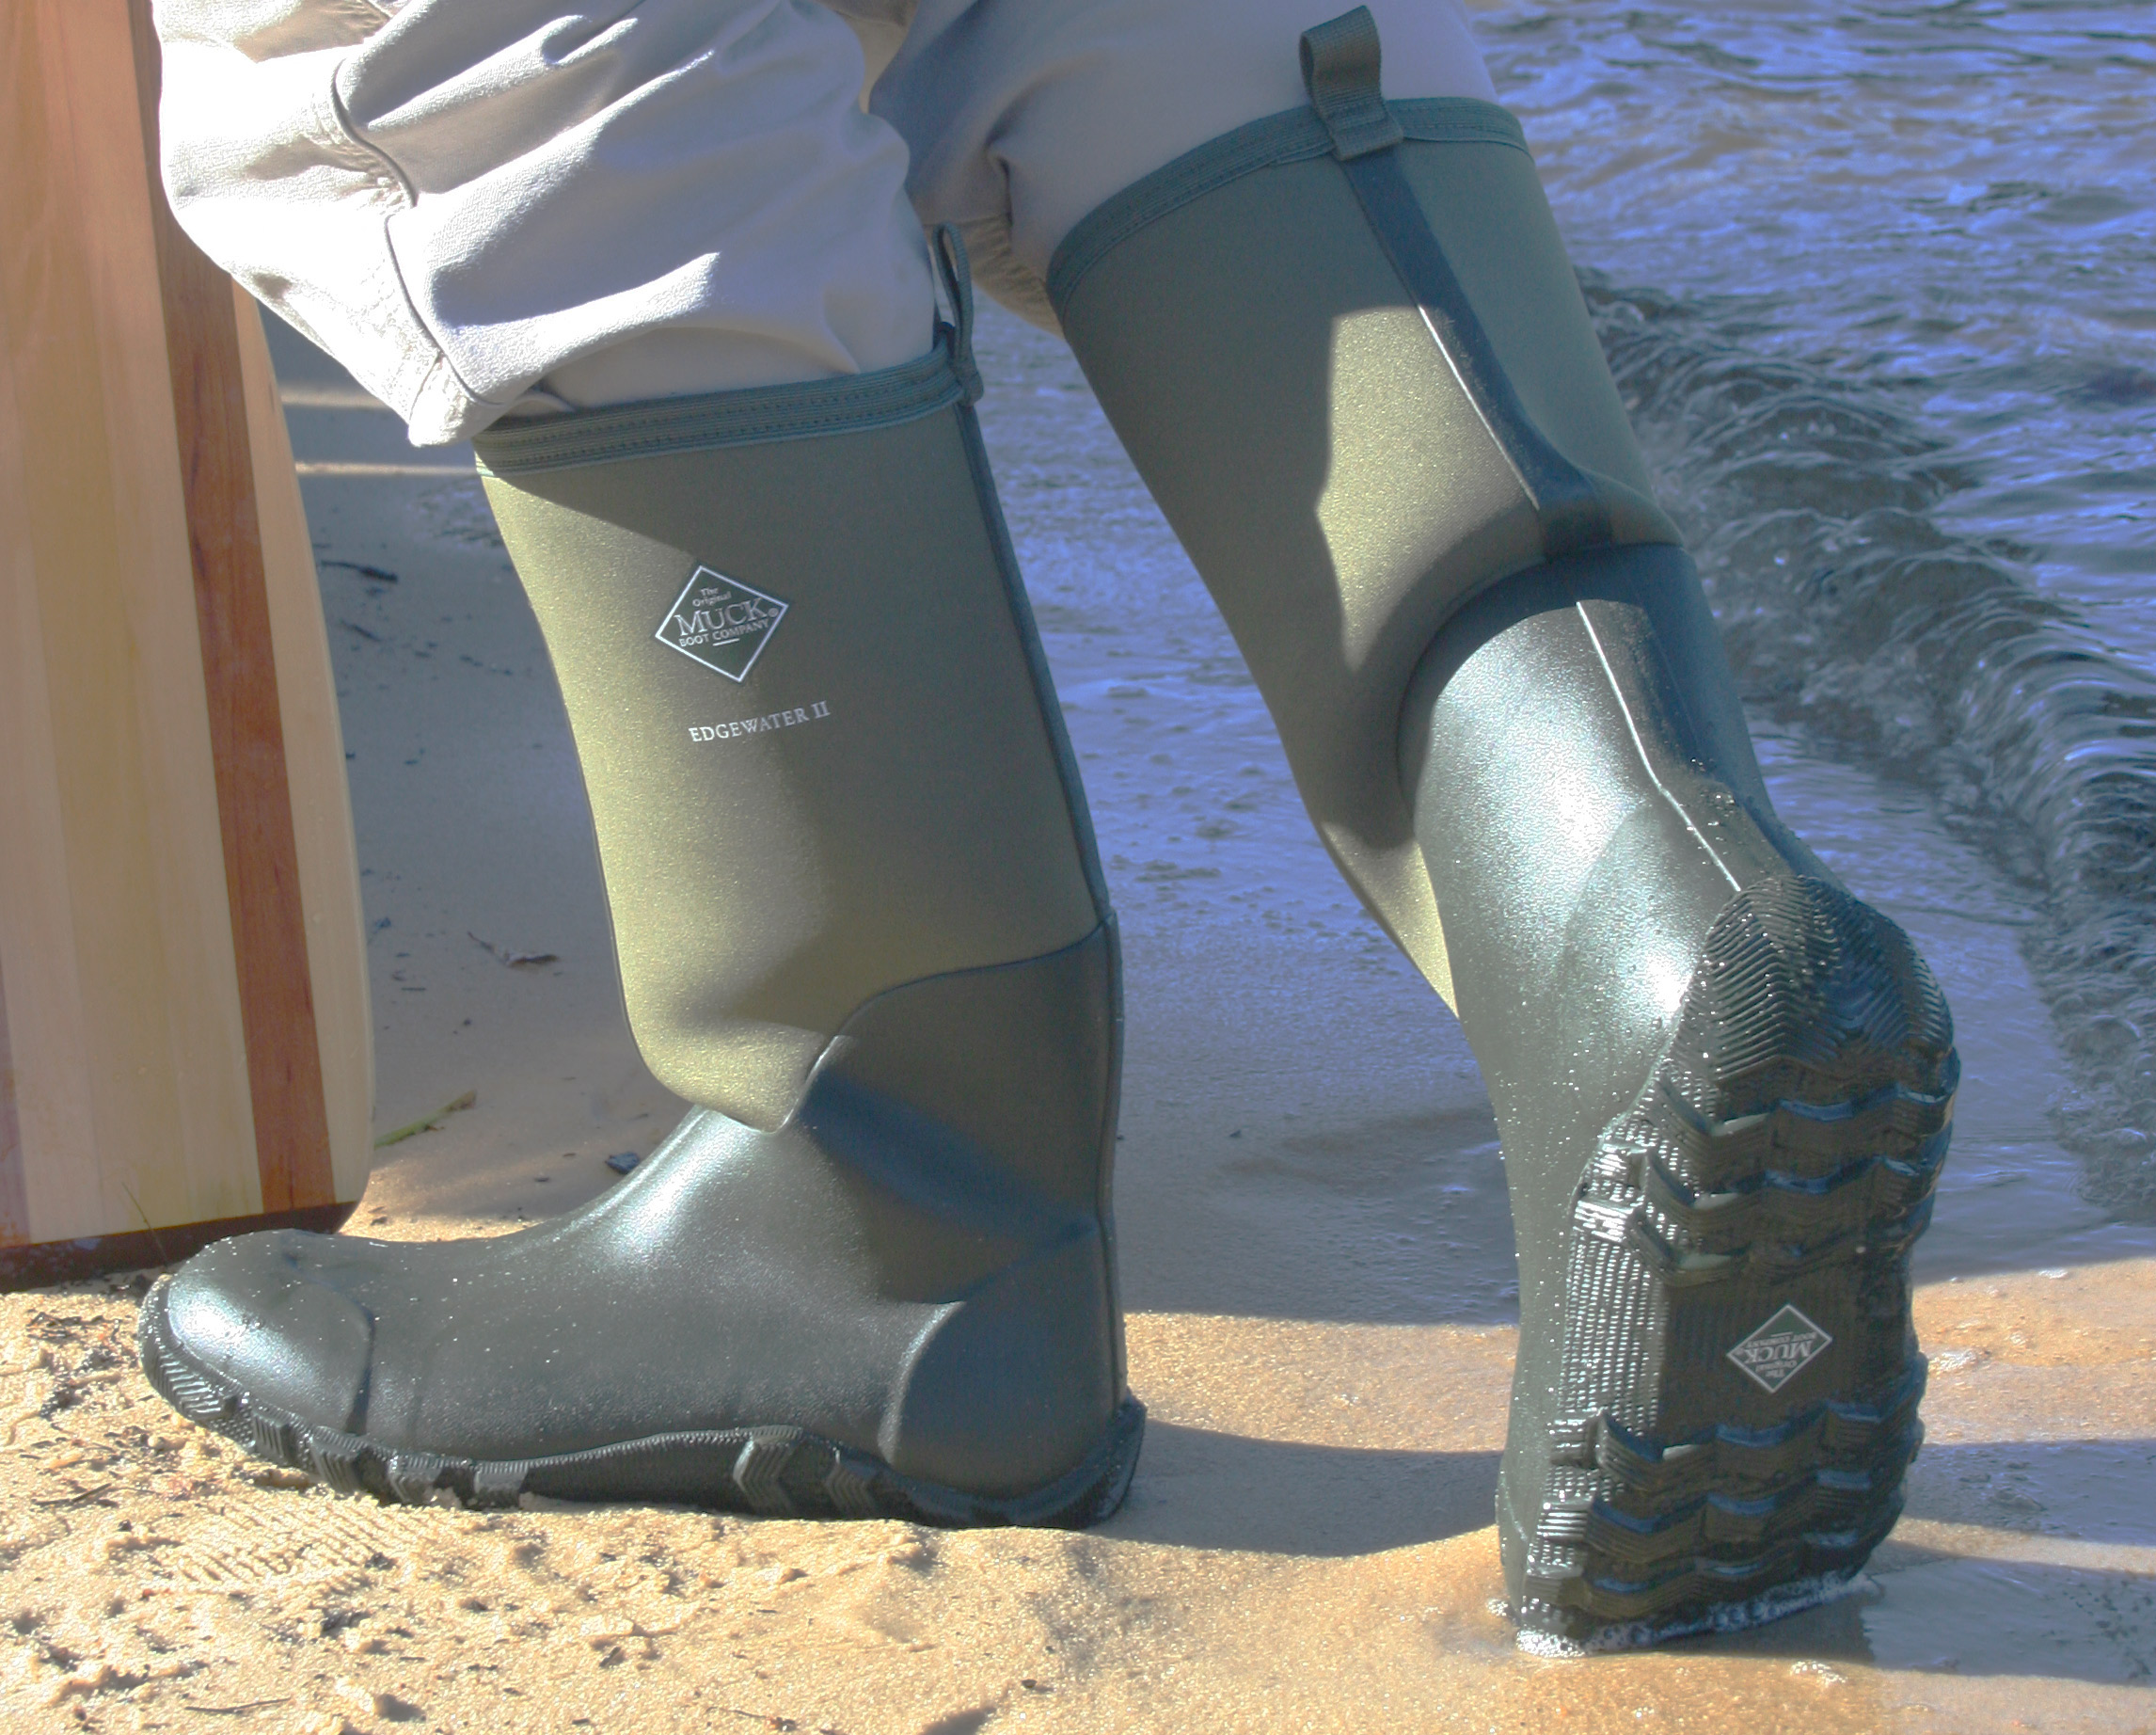 How To Dry Muck Boots